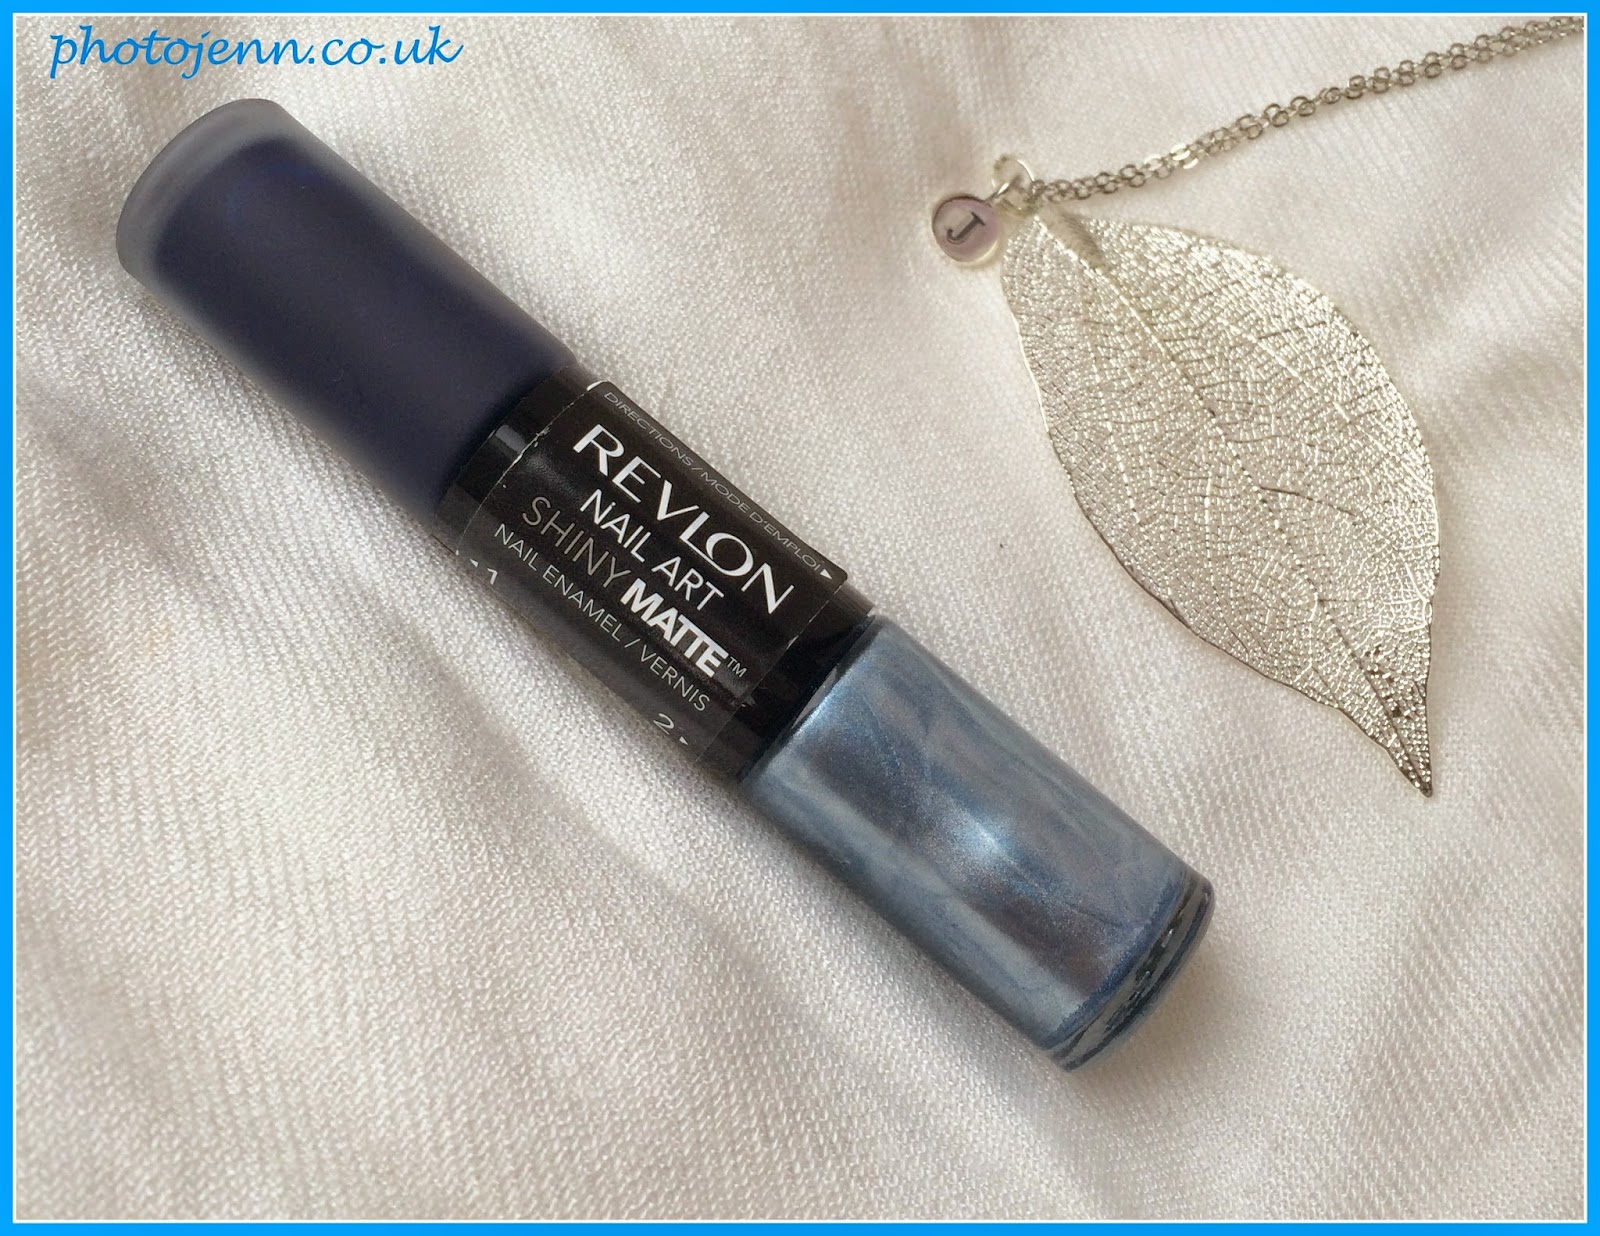 blue-Pinstripe-nails-Revlon-shiny-matte-510